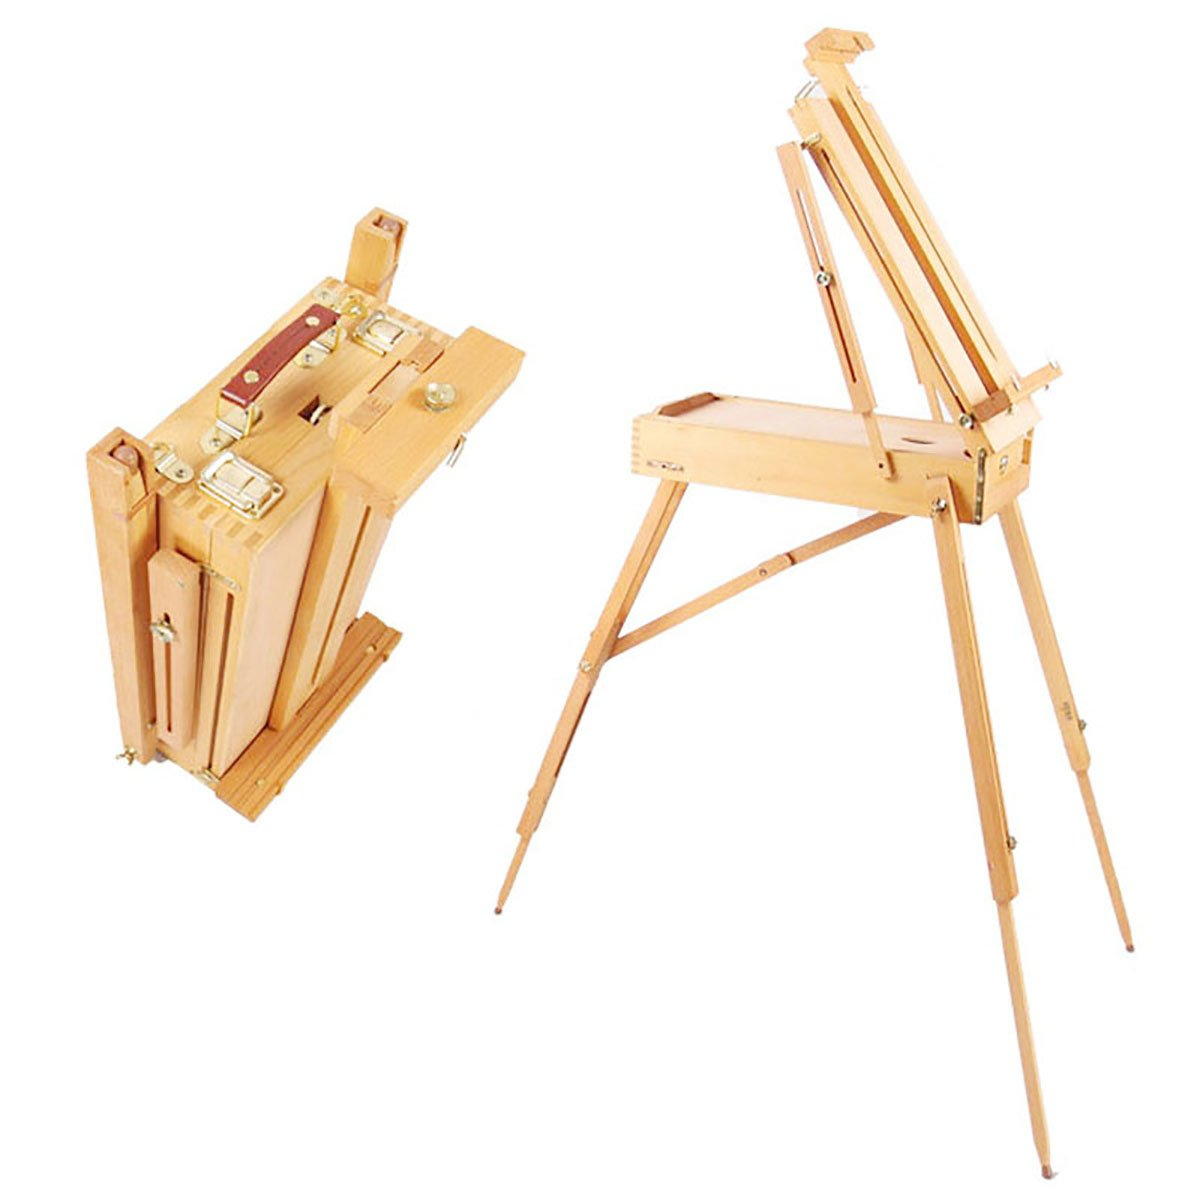 Hestio Wooden Tripod Art Easel Portable Sketch Drawing Box Artist Painting Foldable